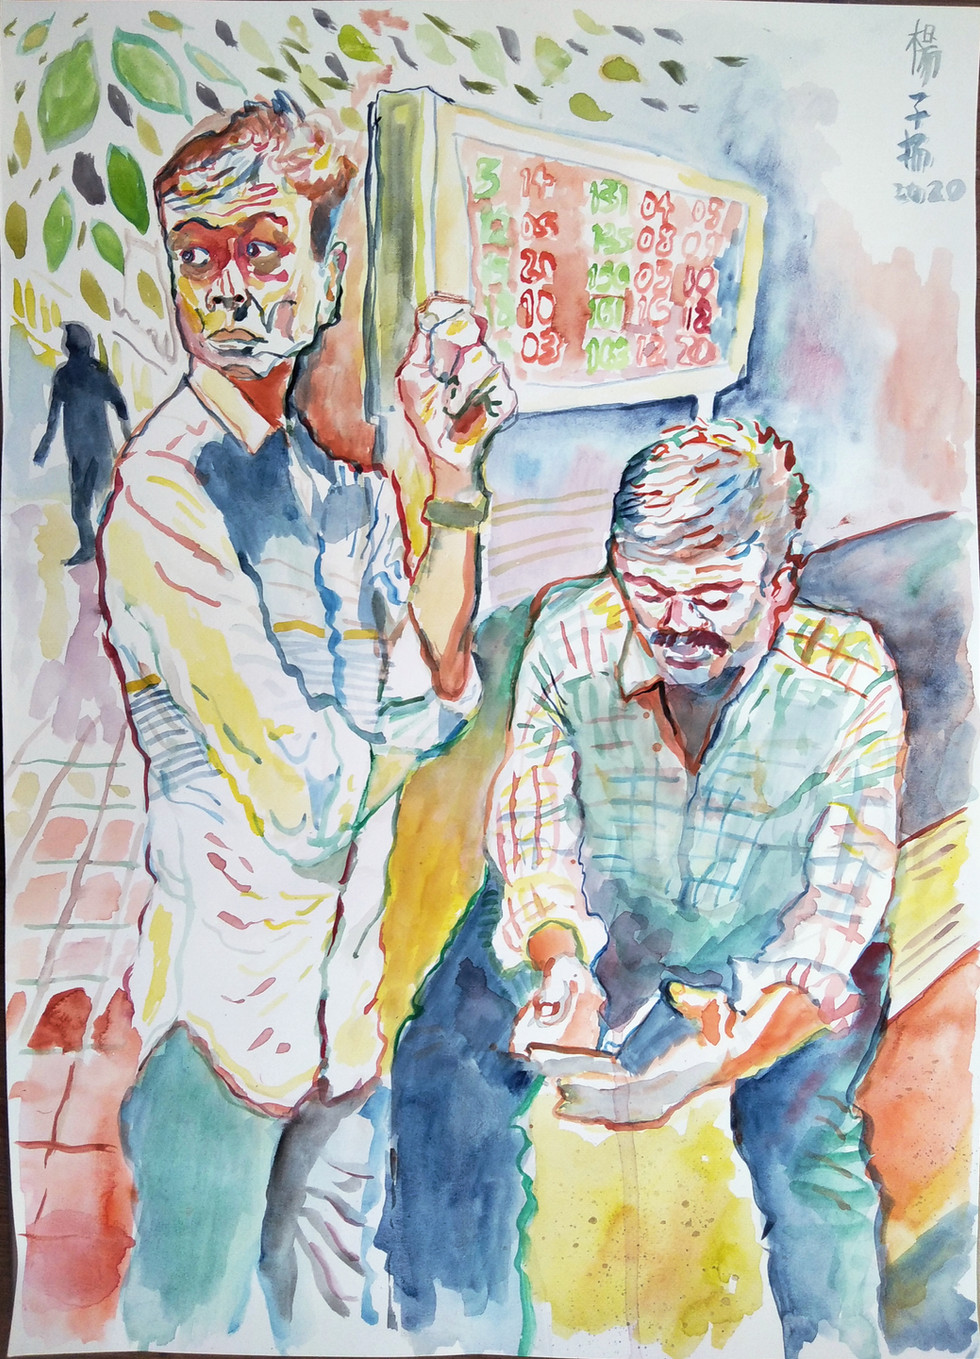 Two Men at the Bus Stop, 2020, Watercolour on paper, 42cm x 59.4cm